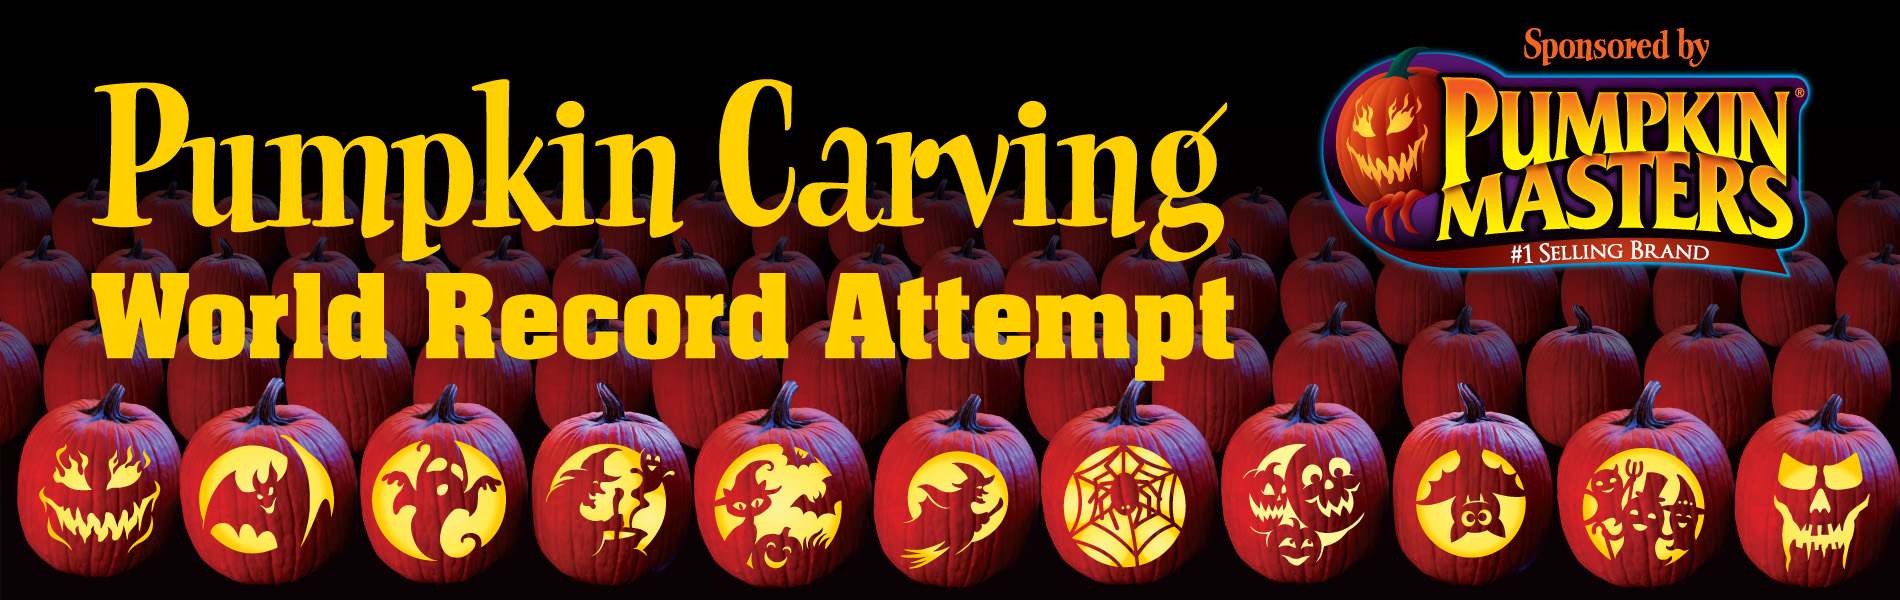 Pumpkin Carving Banner